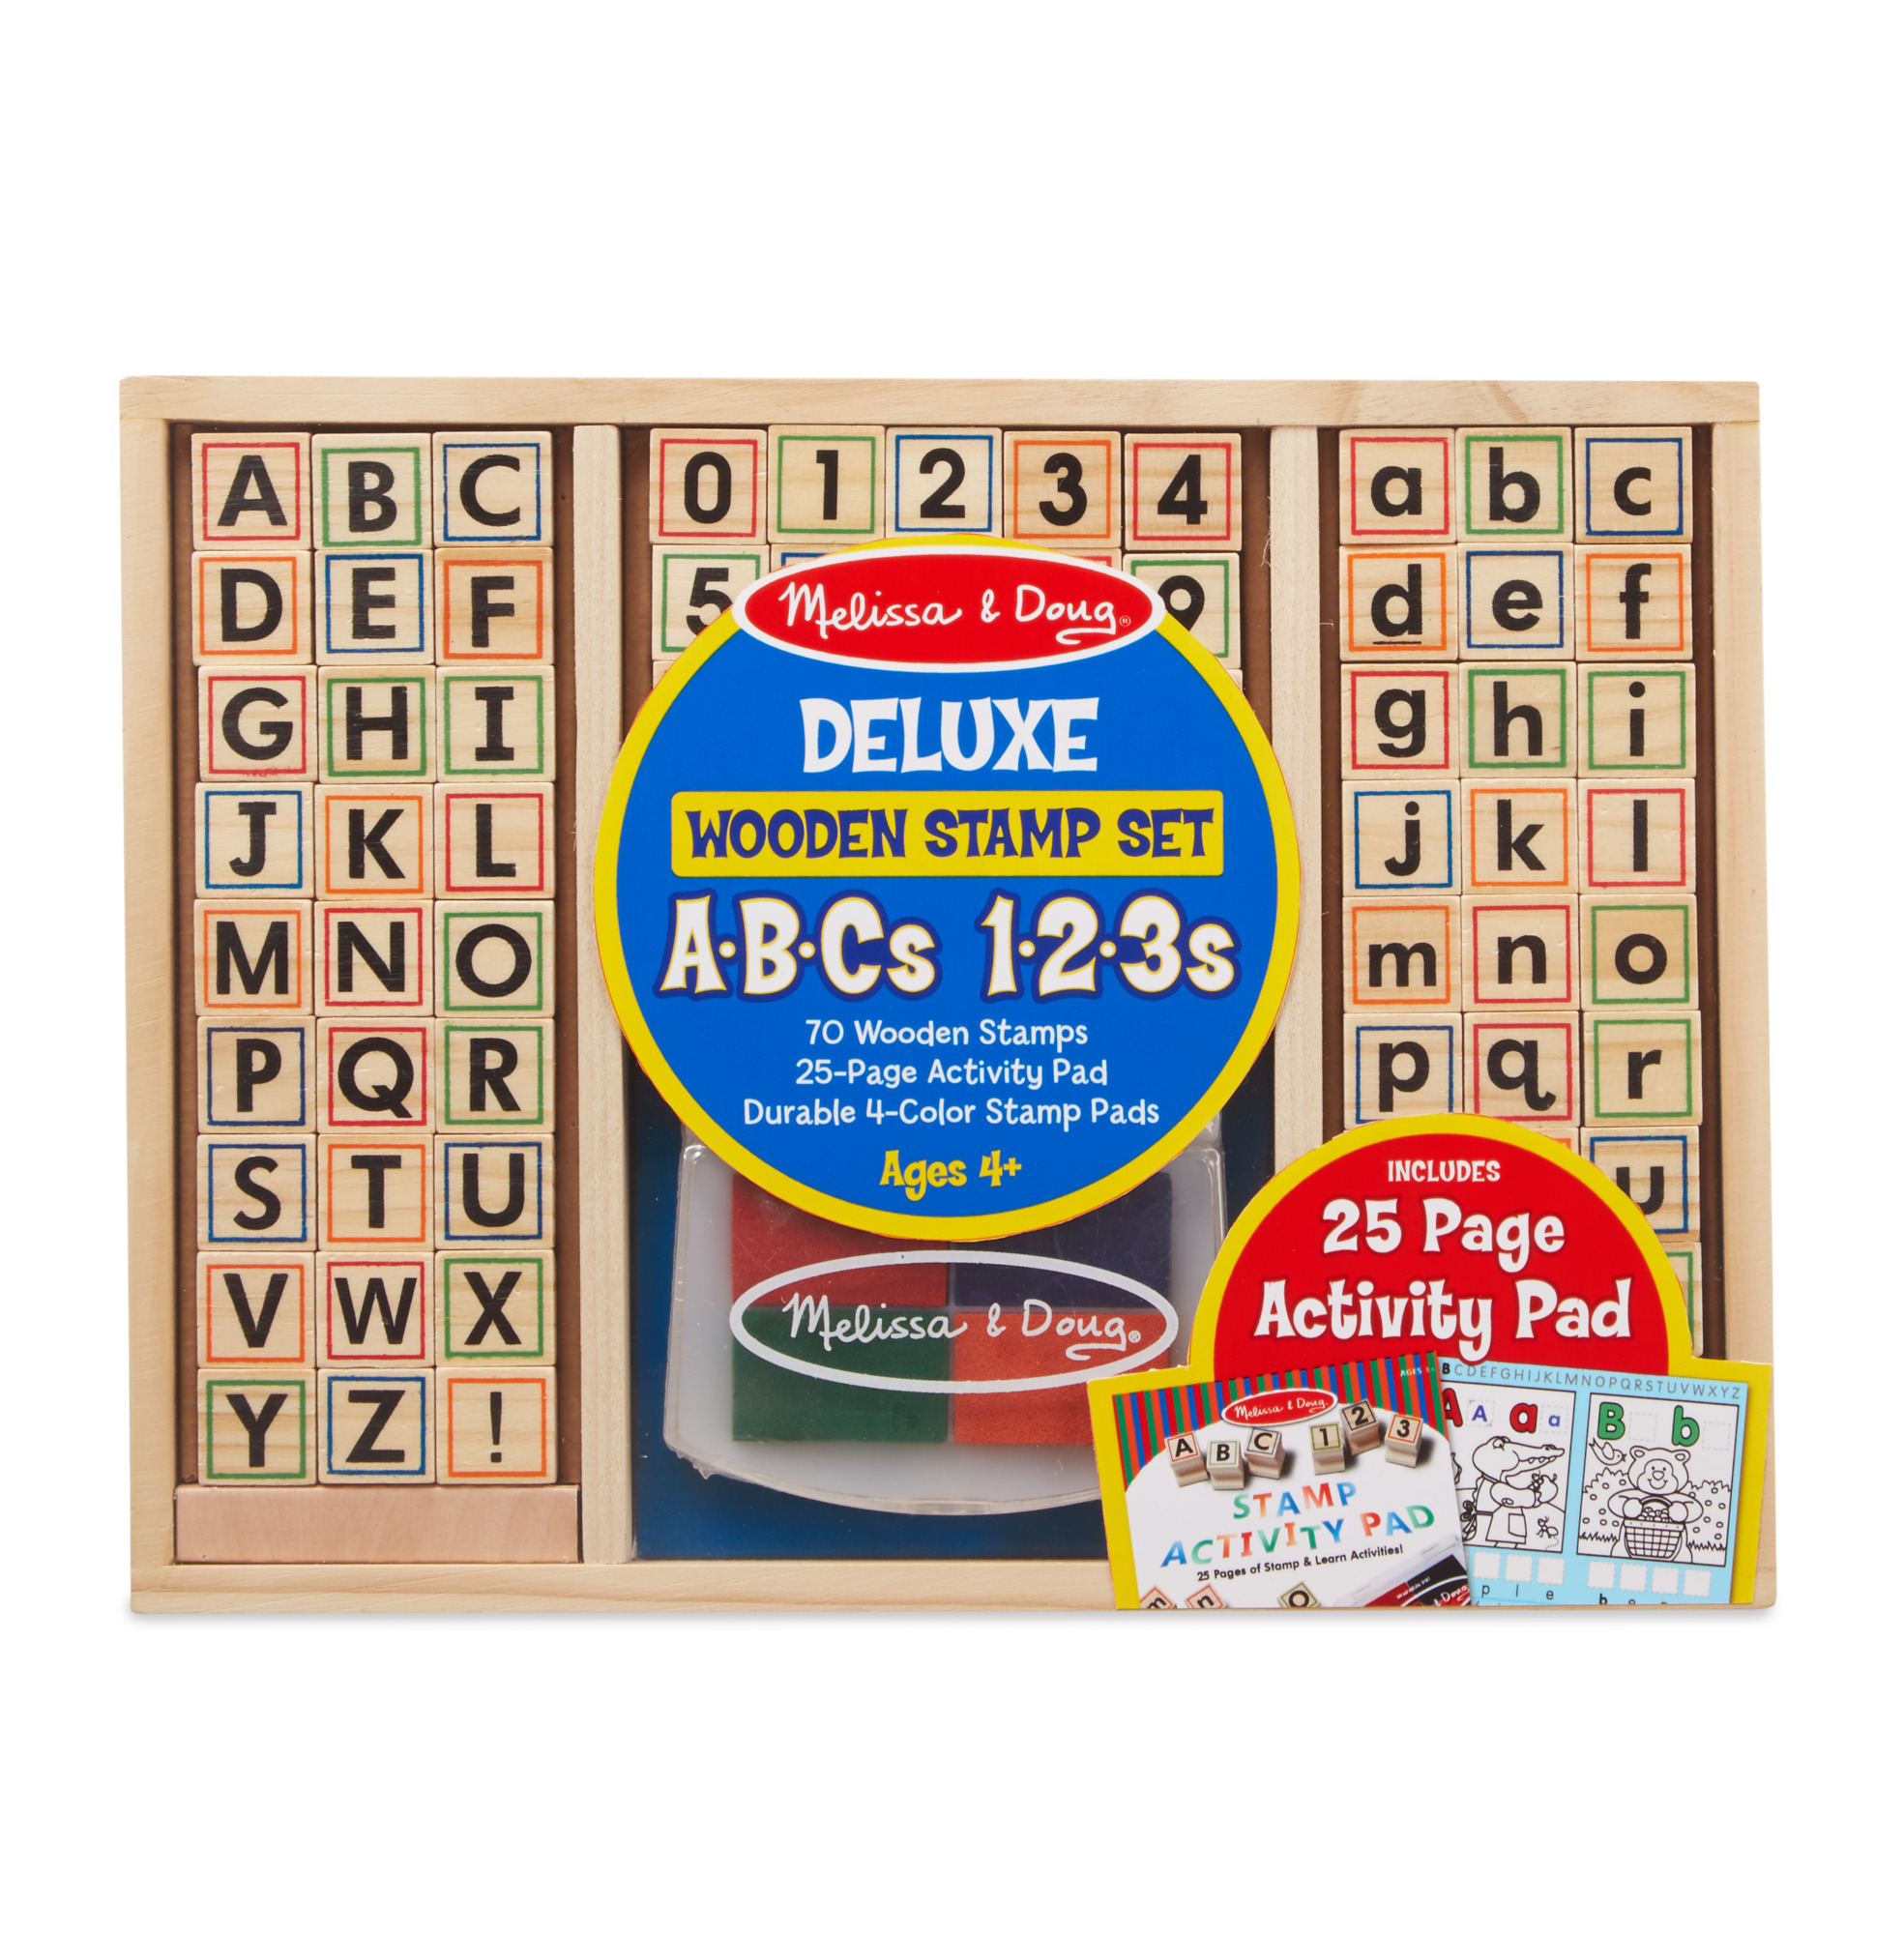 Melissa & Doug Deluxe Letters and Numbers Wooden Stamp Set ABCs 123s With Activity Book, 4-Color Stamp Pad